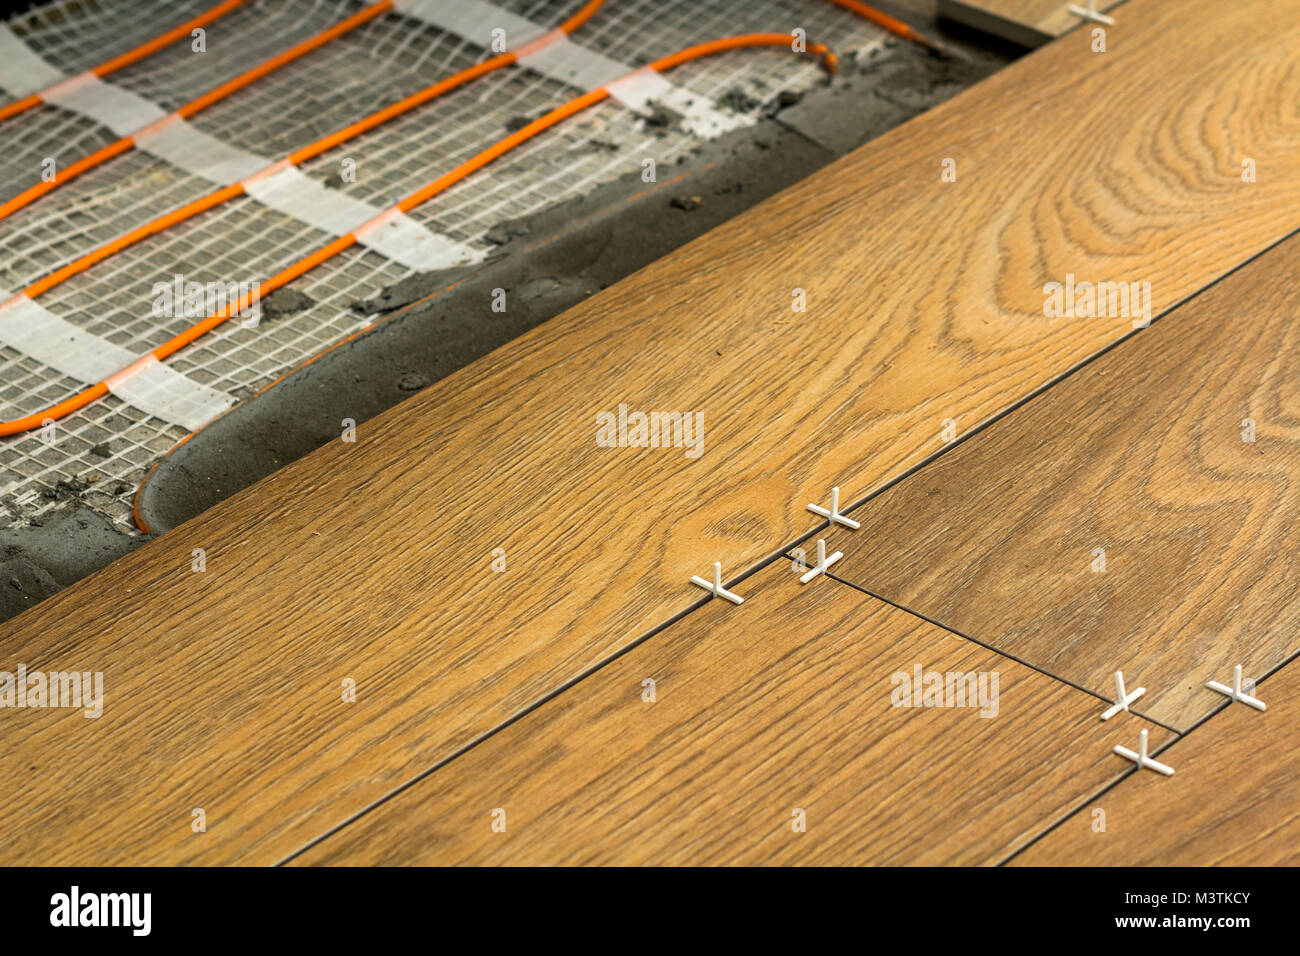 Installation of ceramic tiles and heating elements in warm tile installation of ceramic tiles and heating elements in warm tile floor renovation and improvement concept dailygadgetfo Images